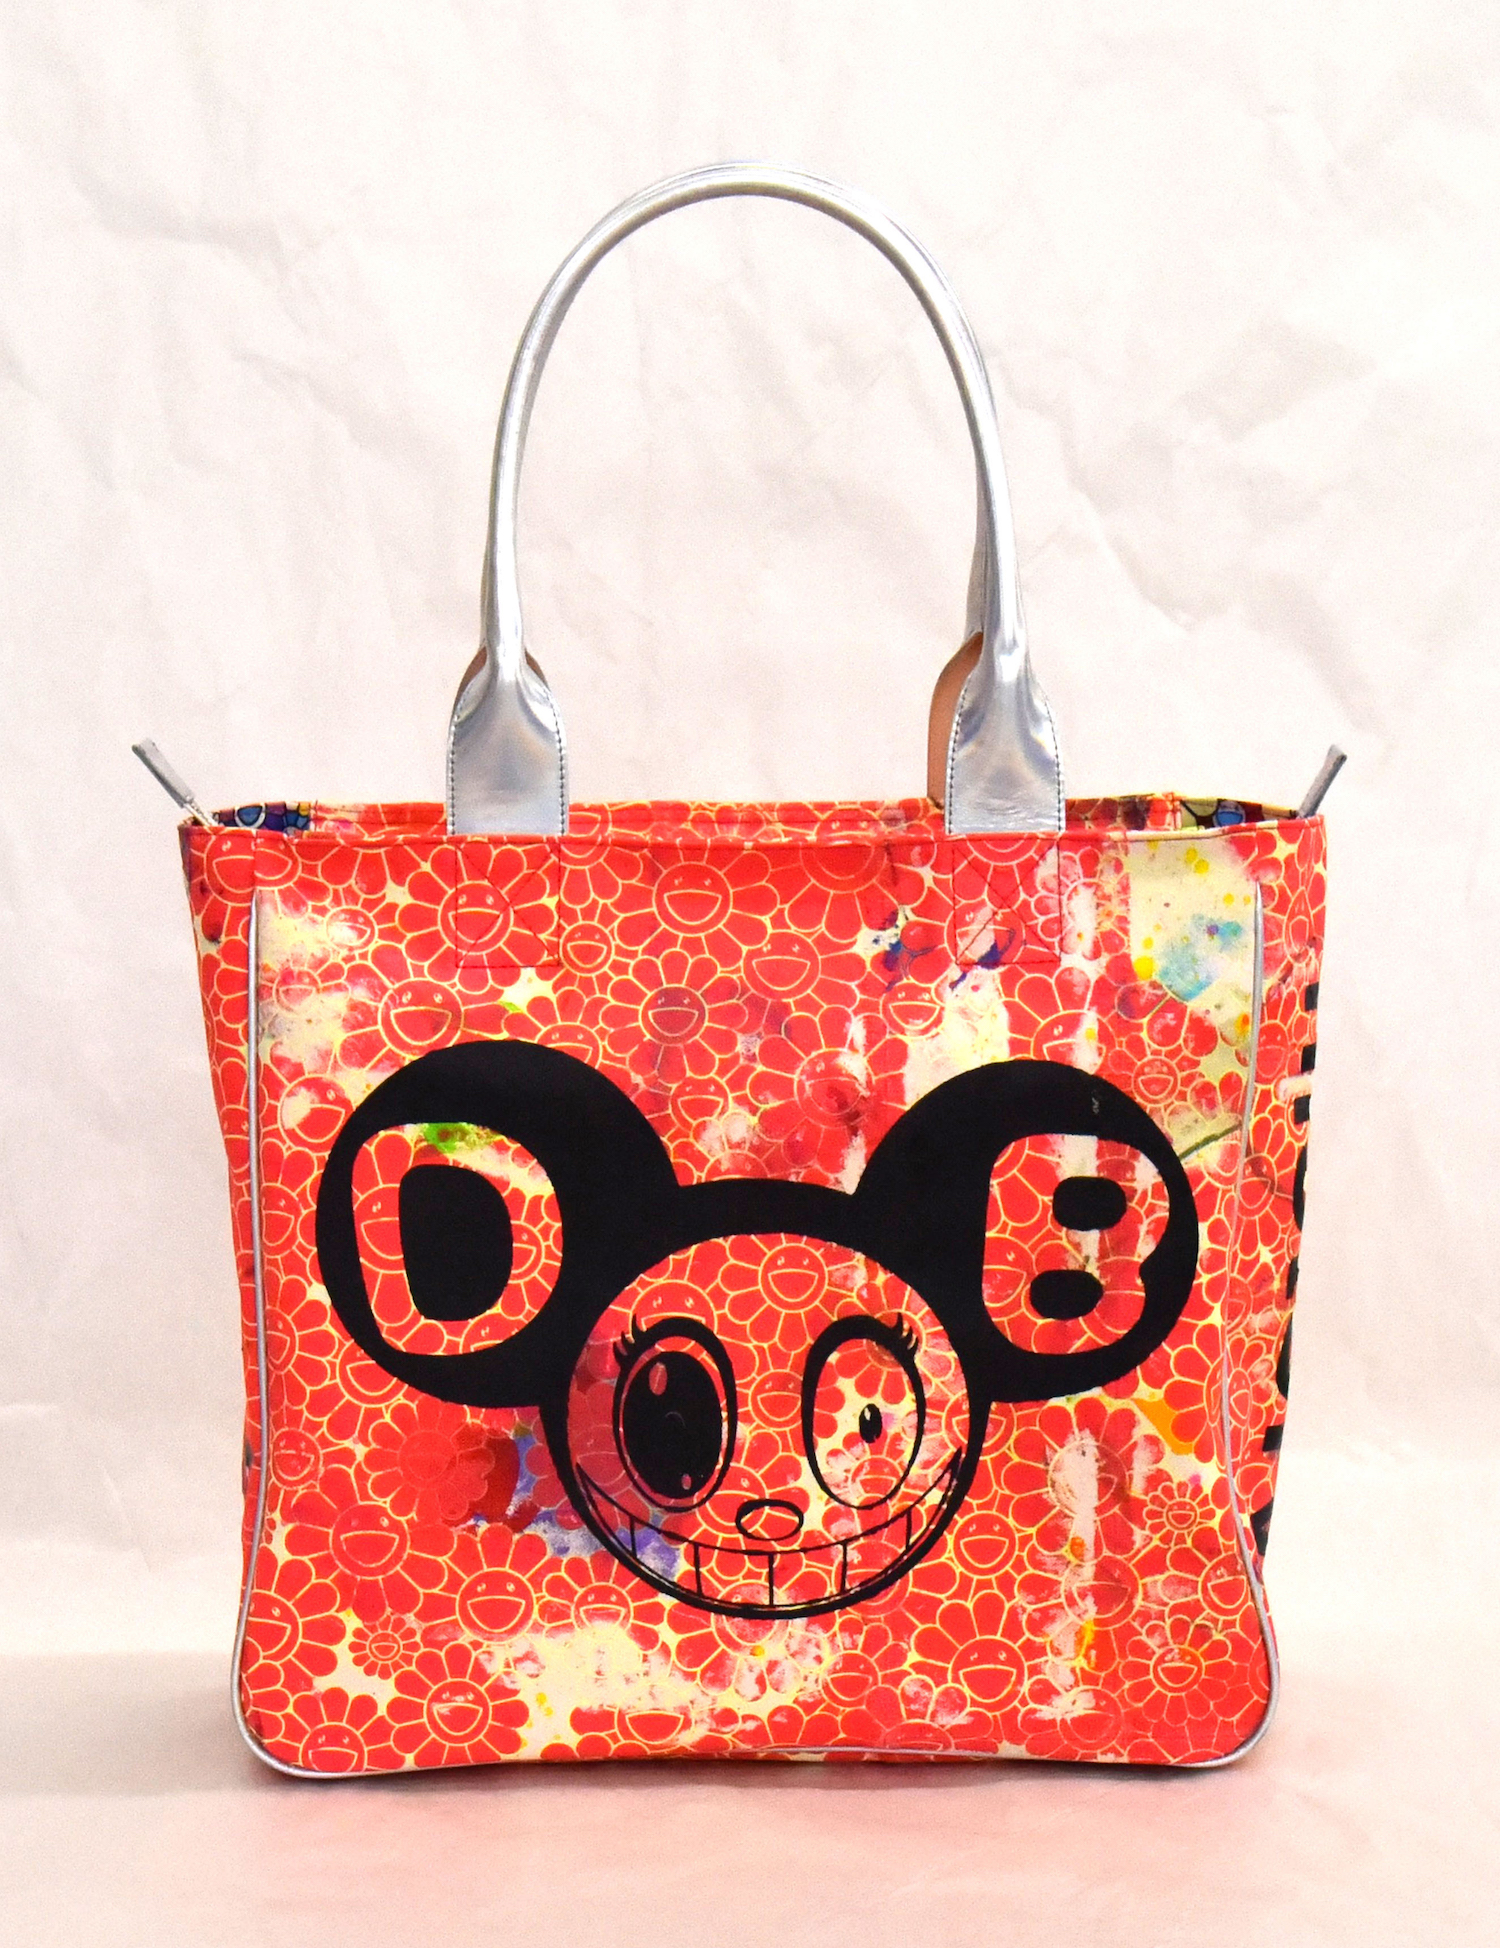 Takashi Murakami & Virgil Abloh, 'Bag', 2018, canvas and leather, 61 x 40.5 x 14cm, unique. Image courtesy of Asia Art Archive.